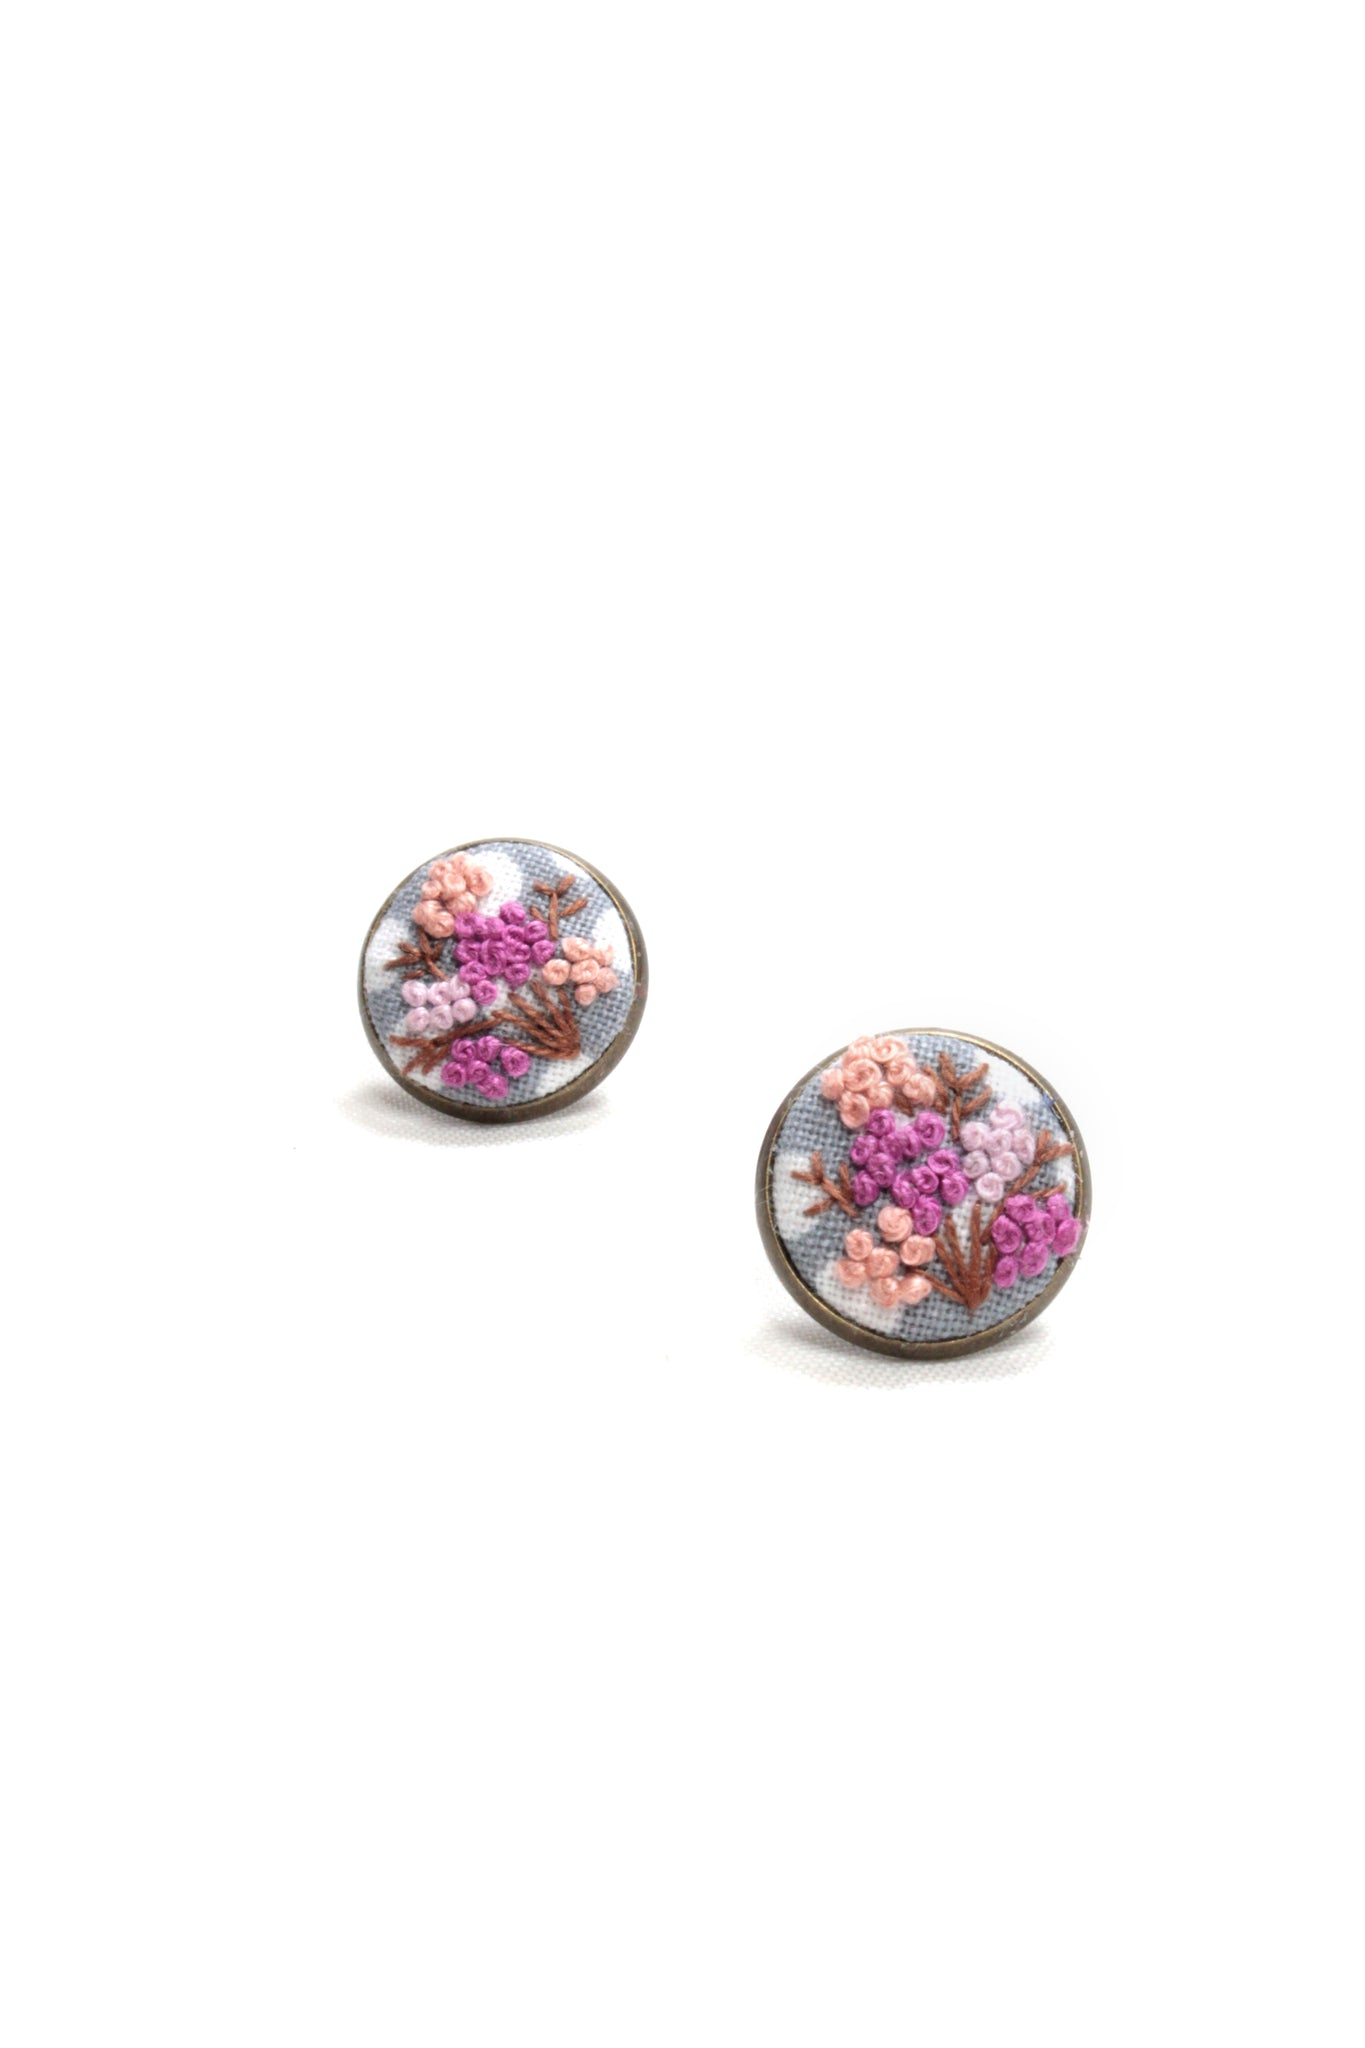 Embroidery Earrings - Pink Flowers